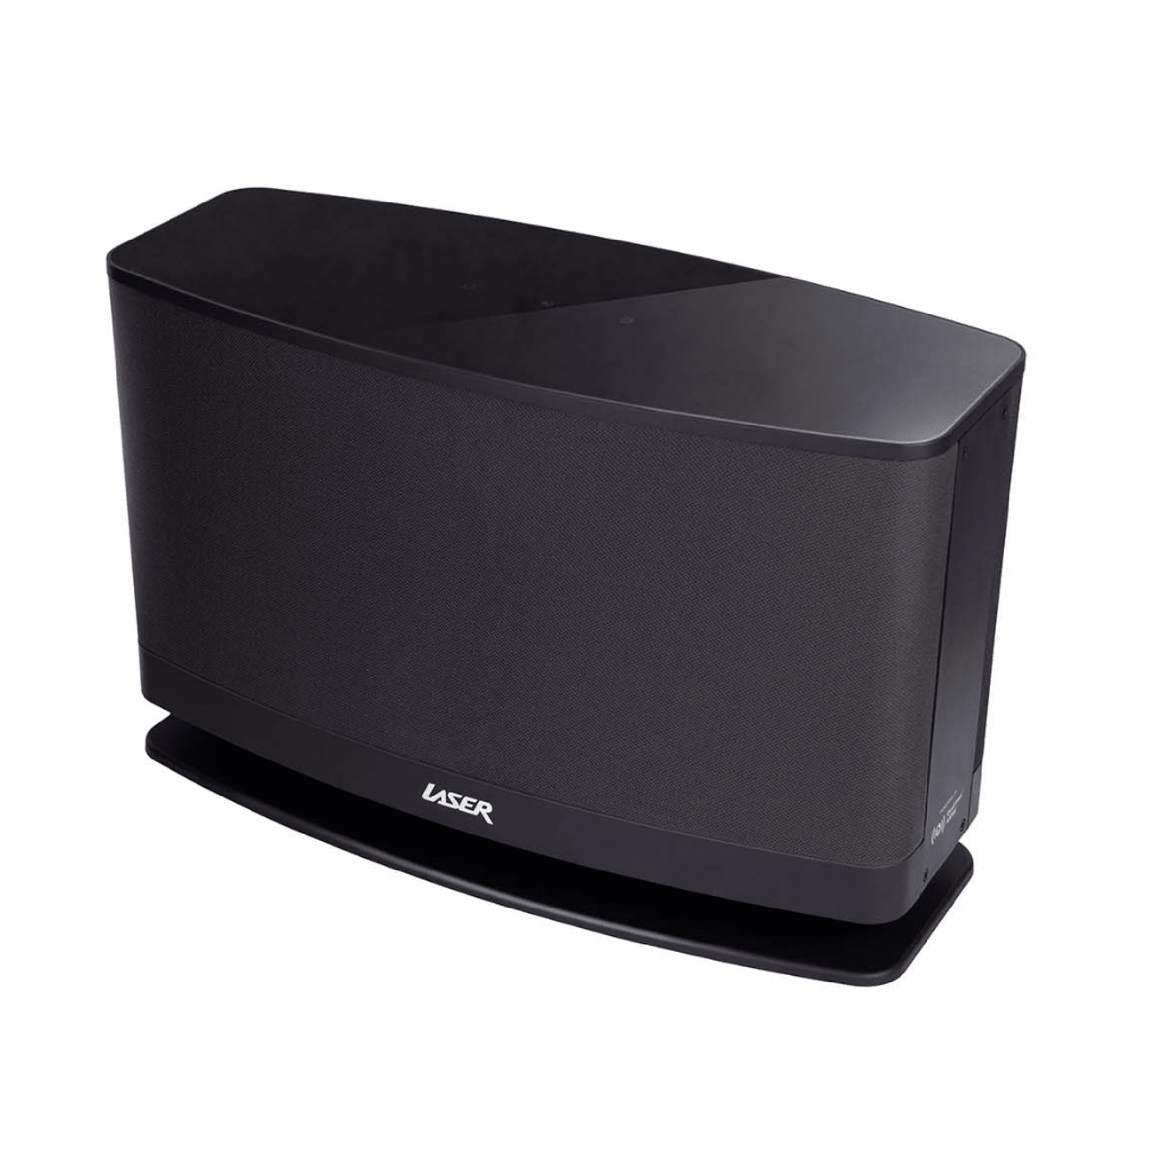 Laser WFQ50 Wi-Fi Multi Room Speaker with Qualcomm Allplay, Spotify, DLNA, 50 watt Stereo